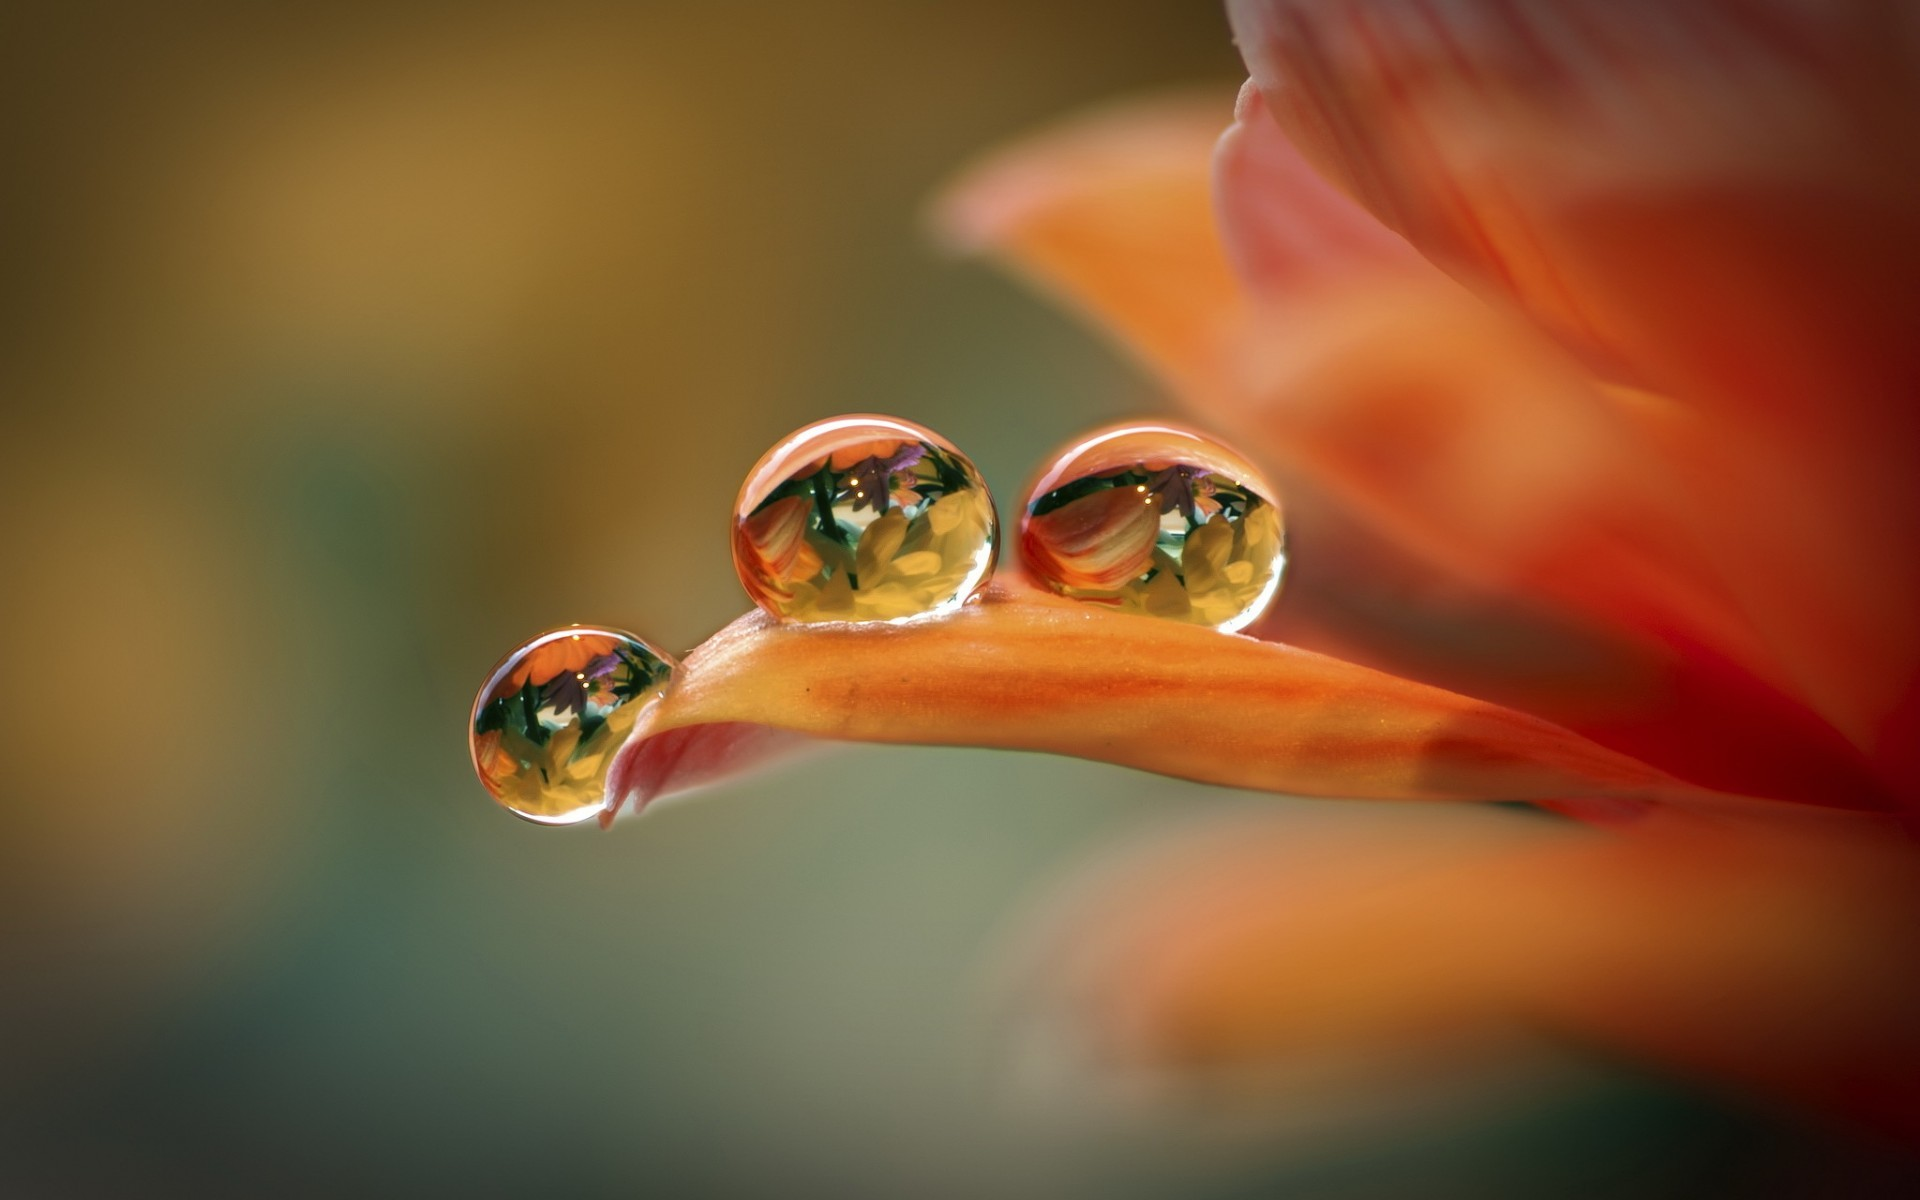 Water Drop Hd Wallpaper Background Image 1920x1200 Id 424482